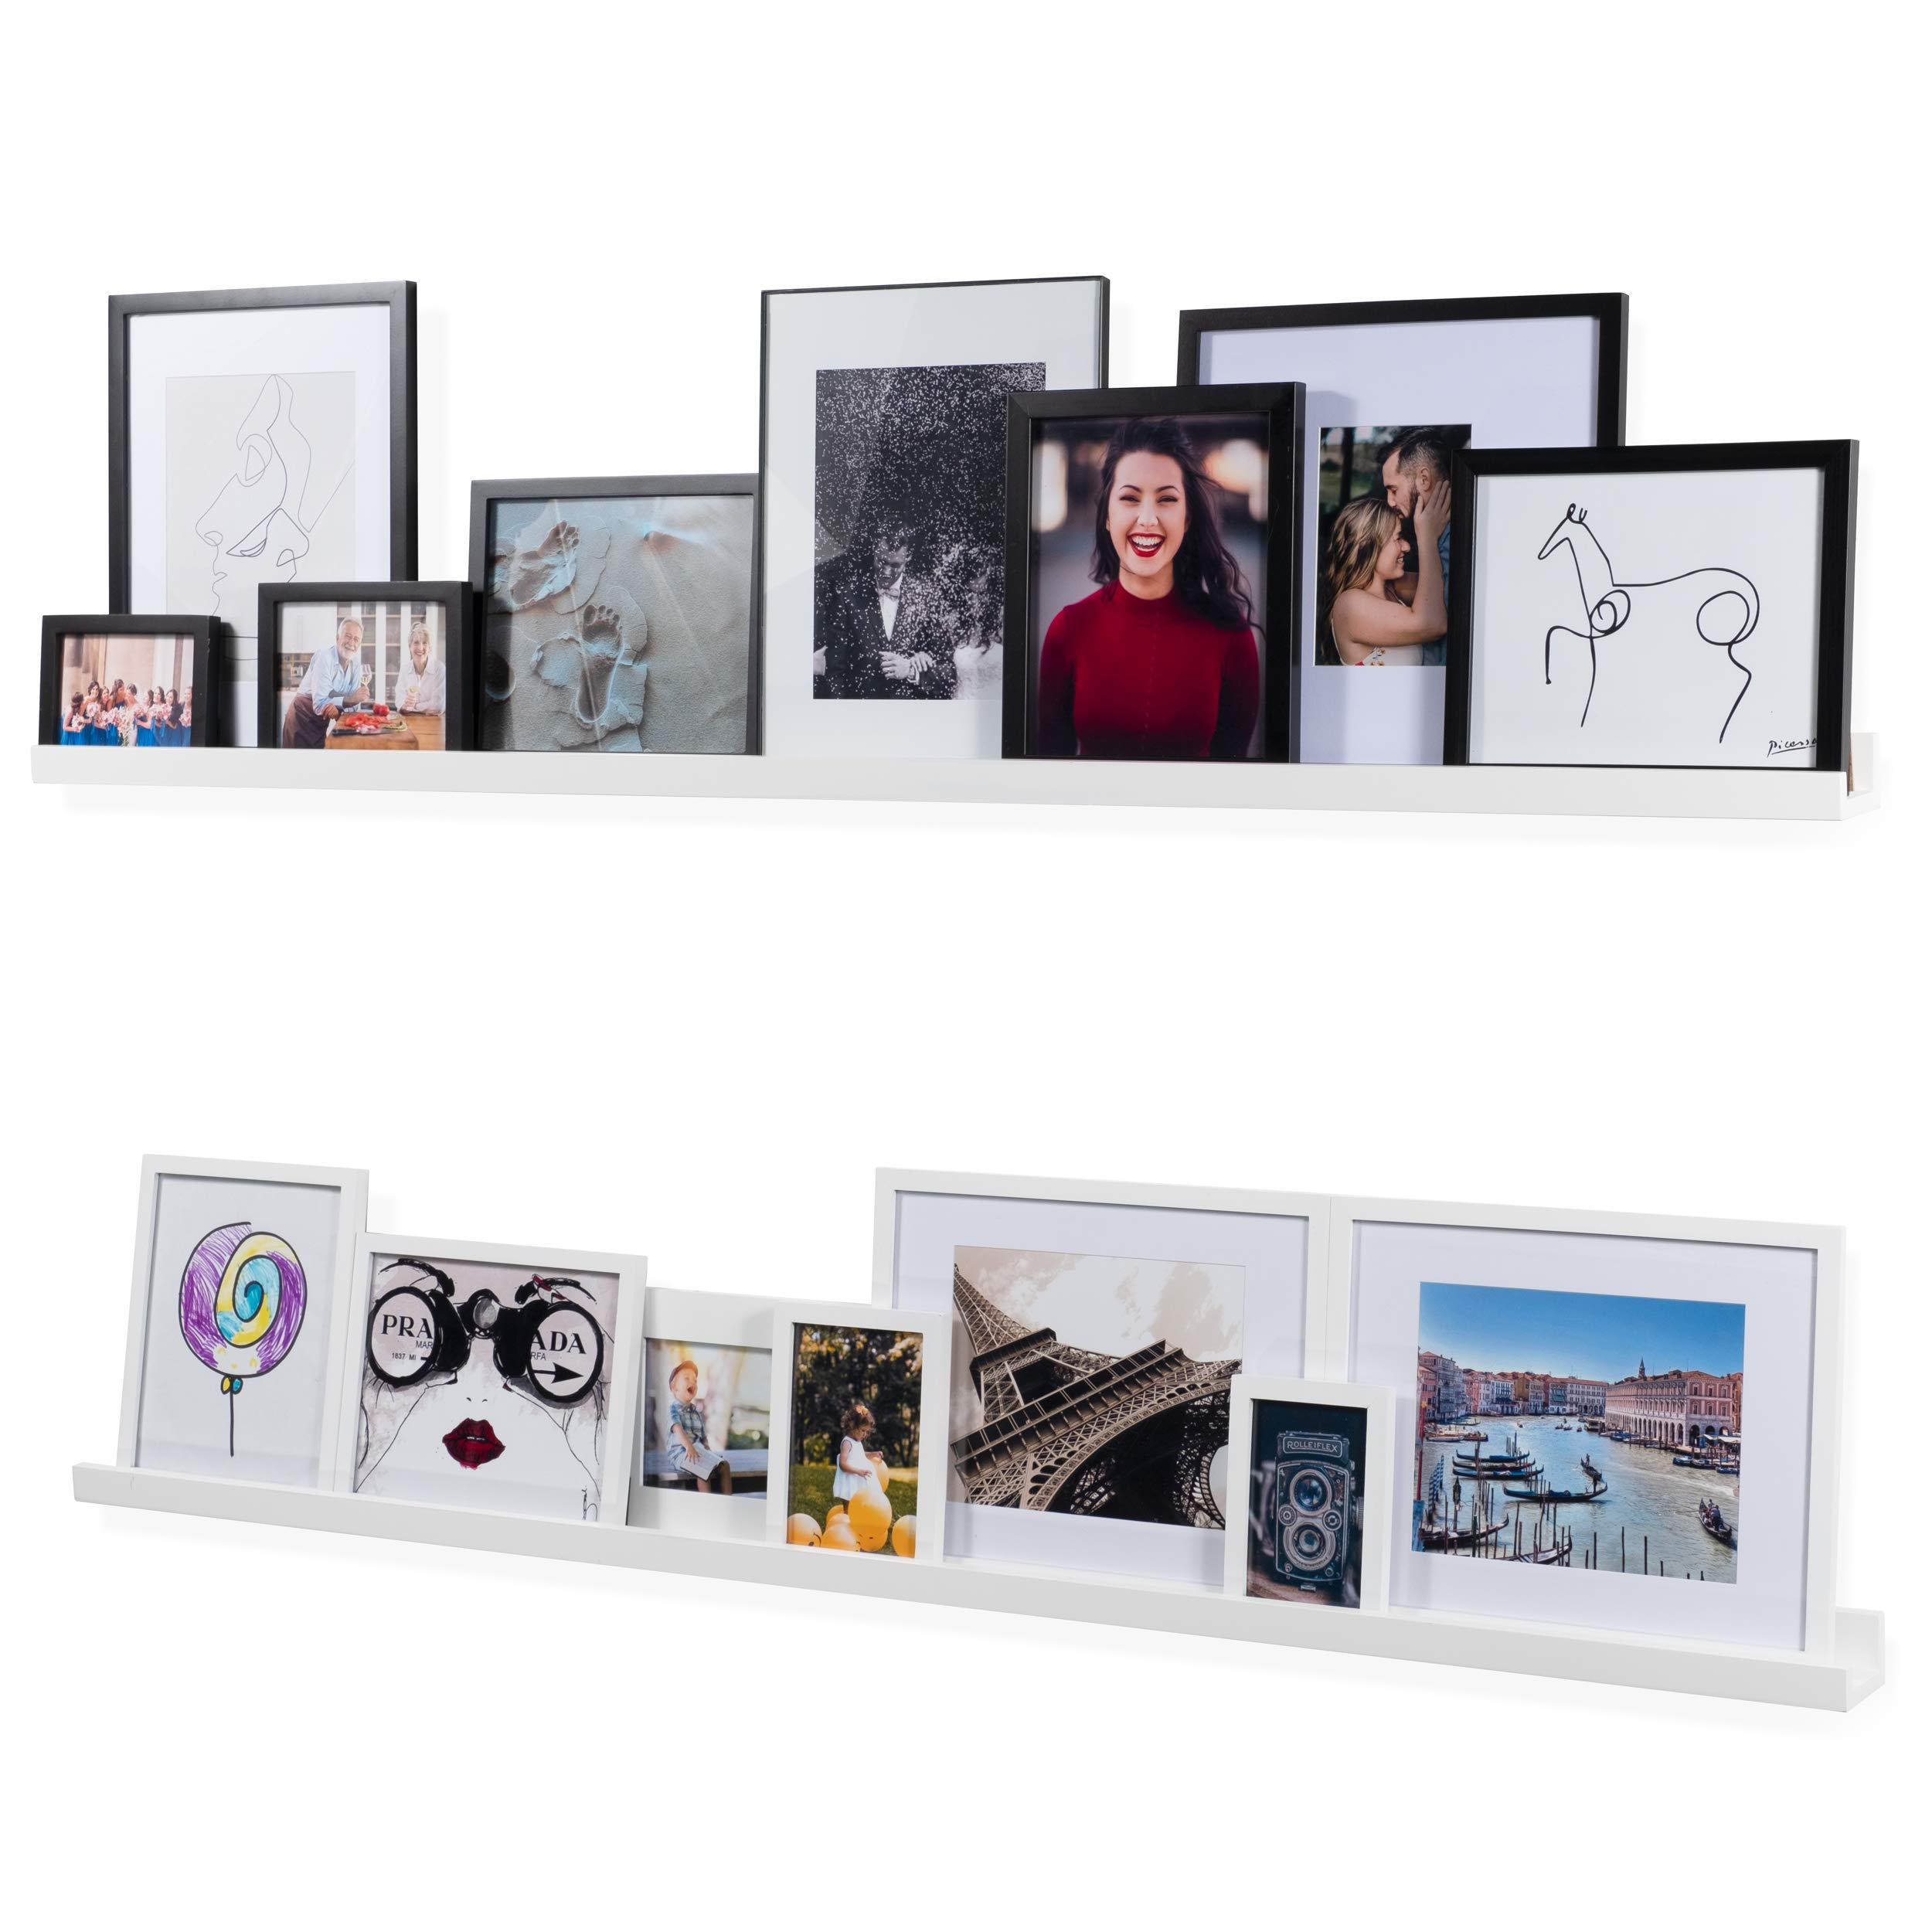 Wallniture Denver Modern Wall Mount Floating Shelves – Long Narrow Picture Ledge - 60 Inch White Set of 2 Mounting Hardware Included